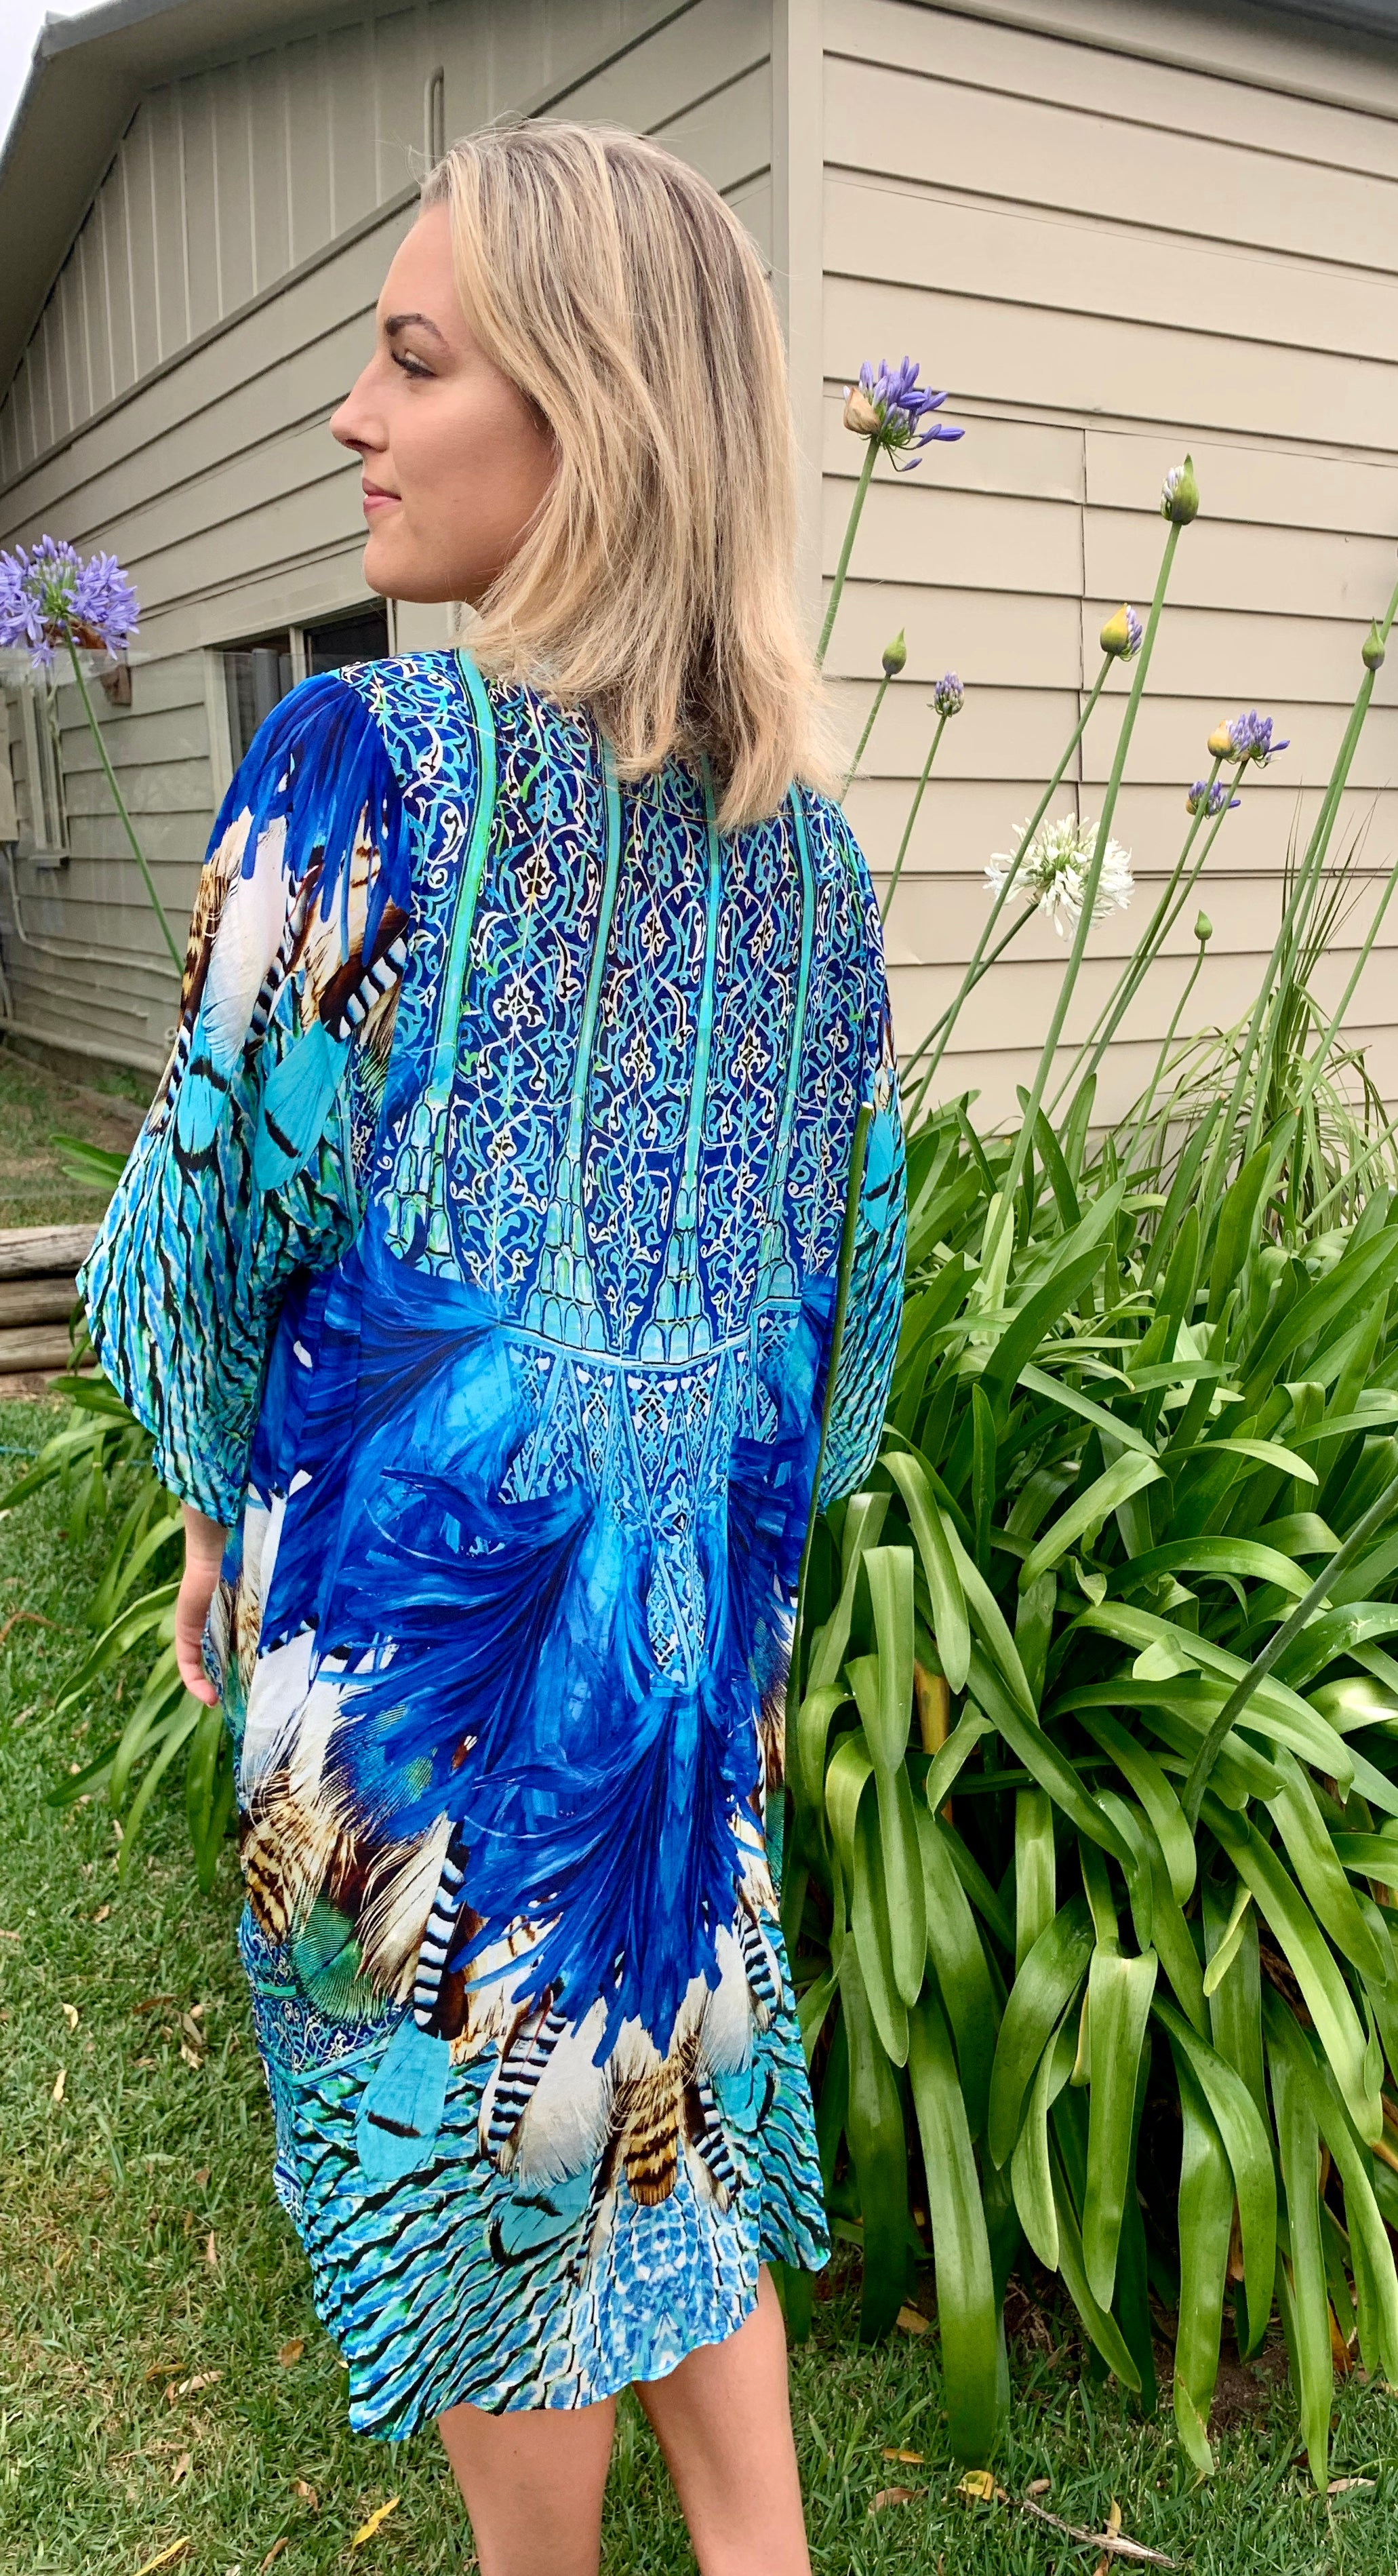 Blue Feather Embellished Cape - GlamTanz Kaftans & Resortwear Sydney Australia